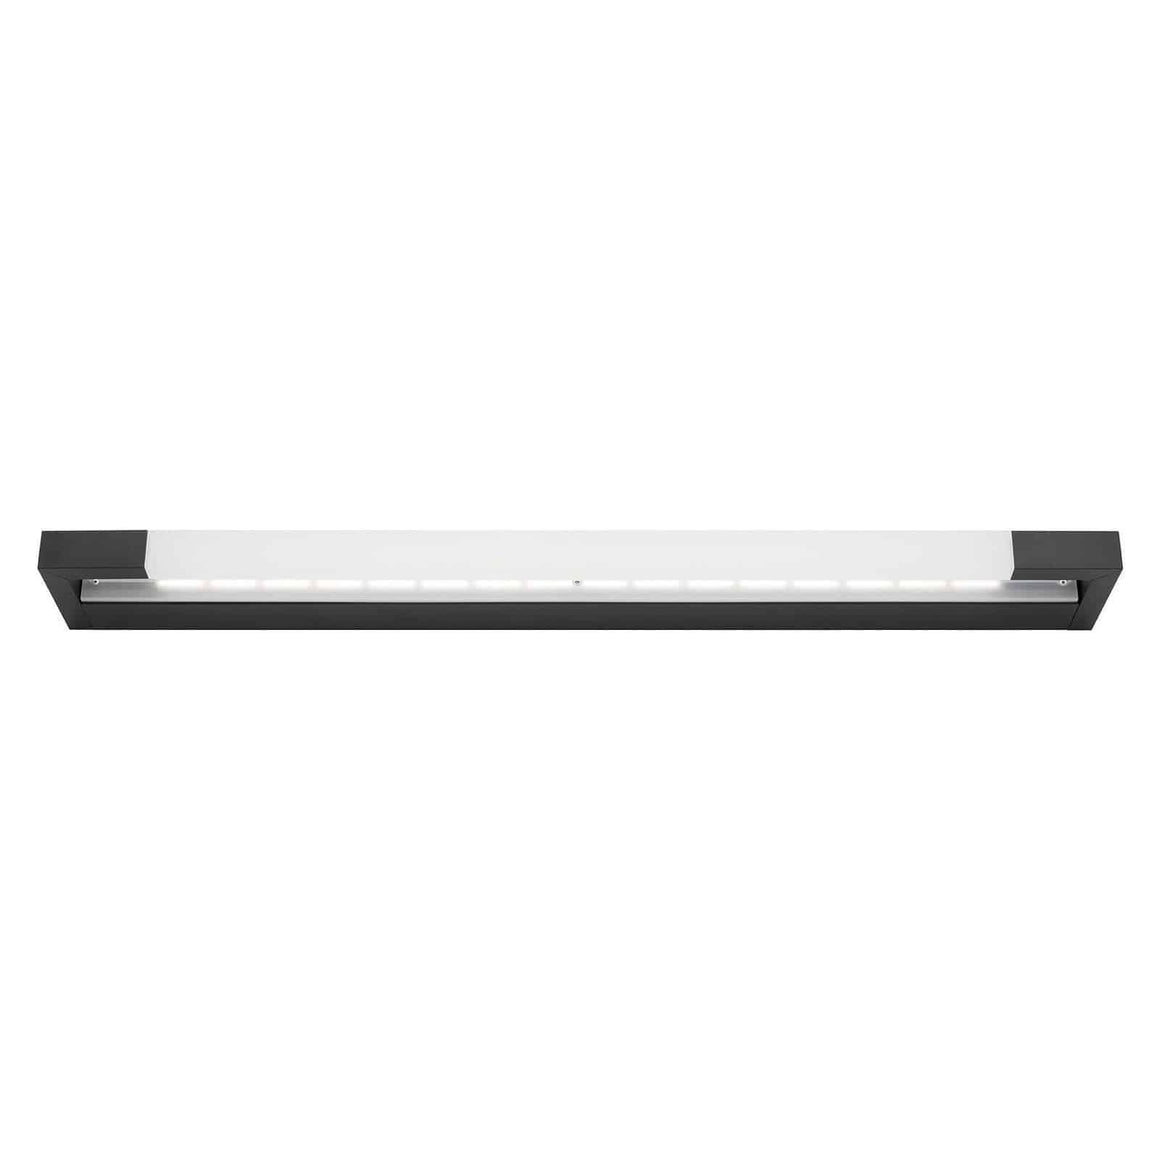 LYNX 20W LED VANITY LIGHT BLACK